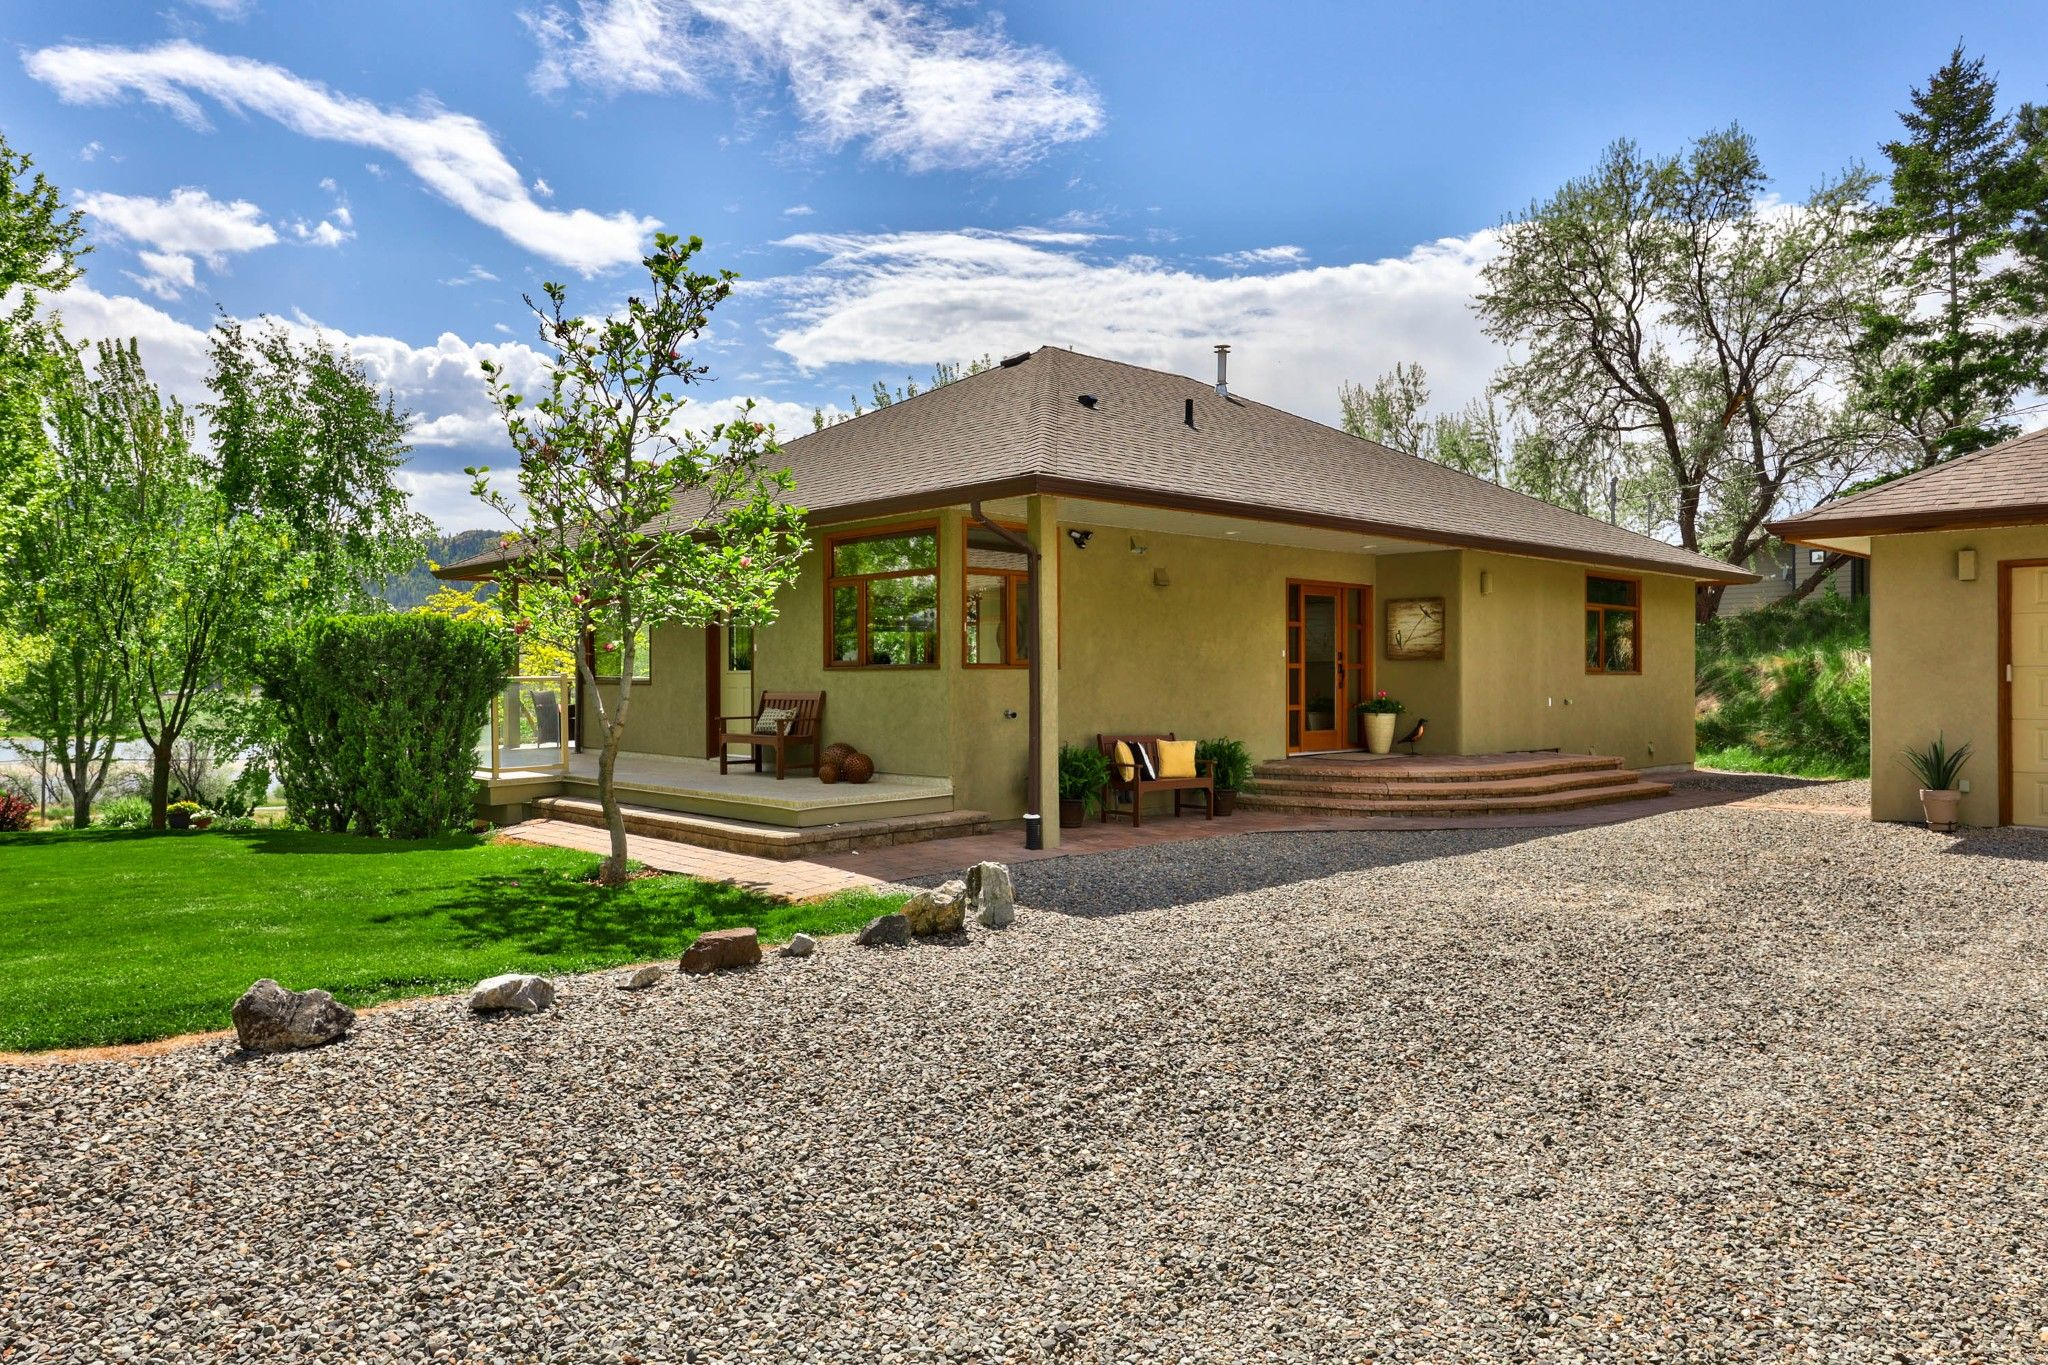 Photo 3: Photos: 3299 E Shuswap Road in Kamloops: South Thompson Valley House for sale : MLS®# 162162